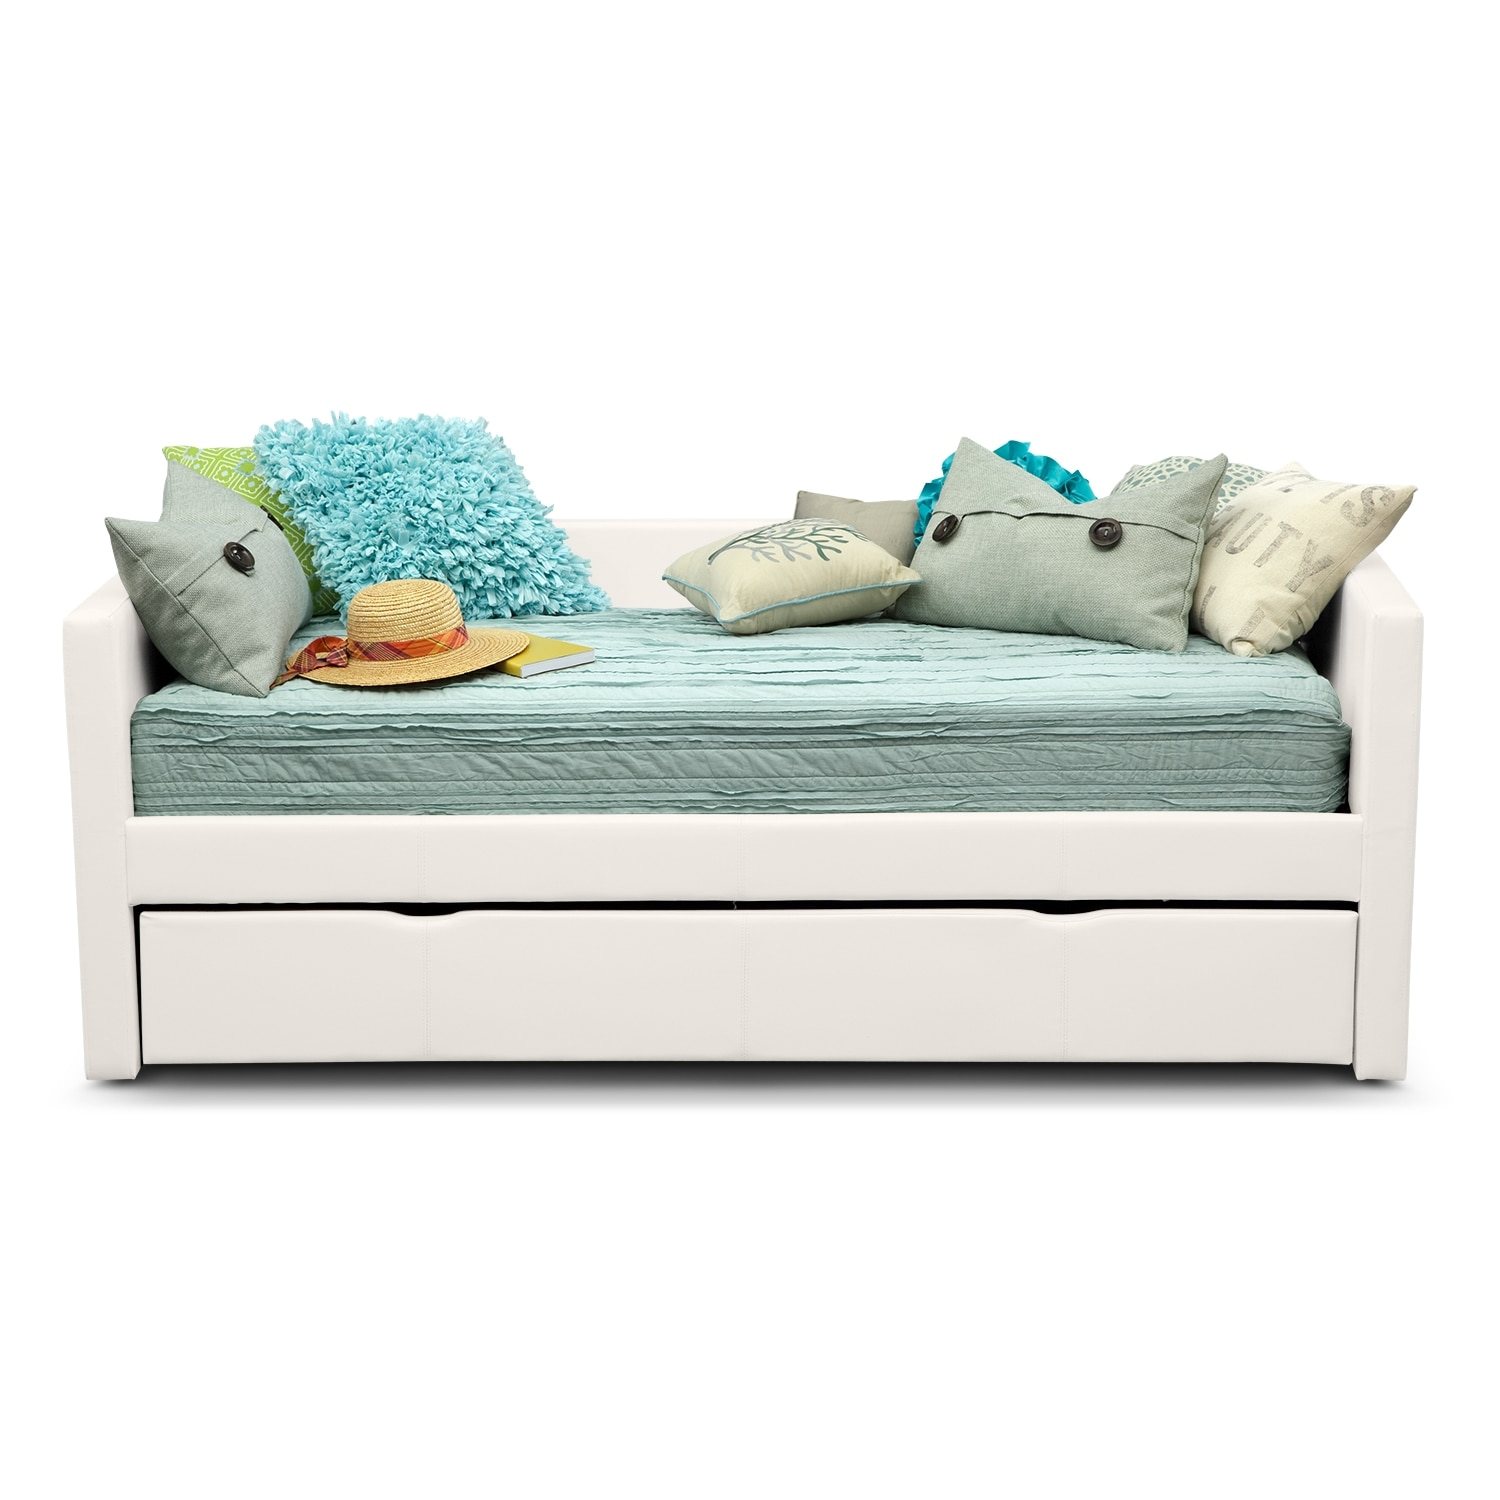 Click to change image. - Carey Twin Daybed With Trundle - White Value City Furniture